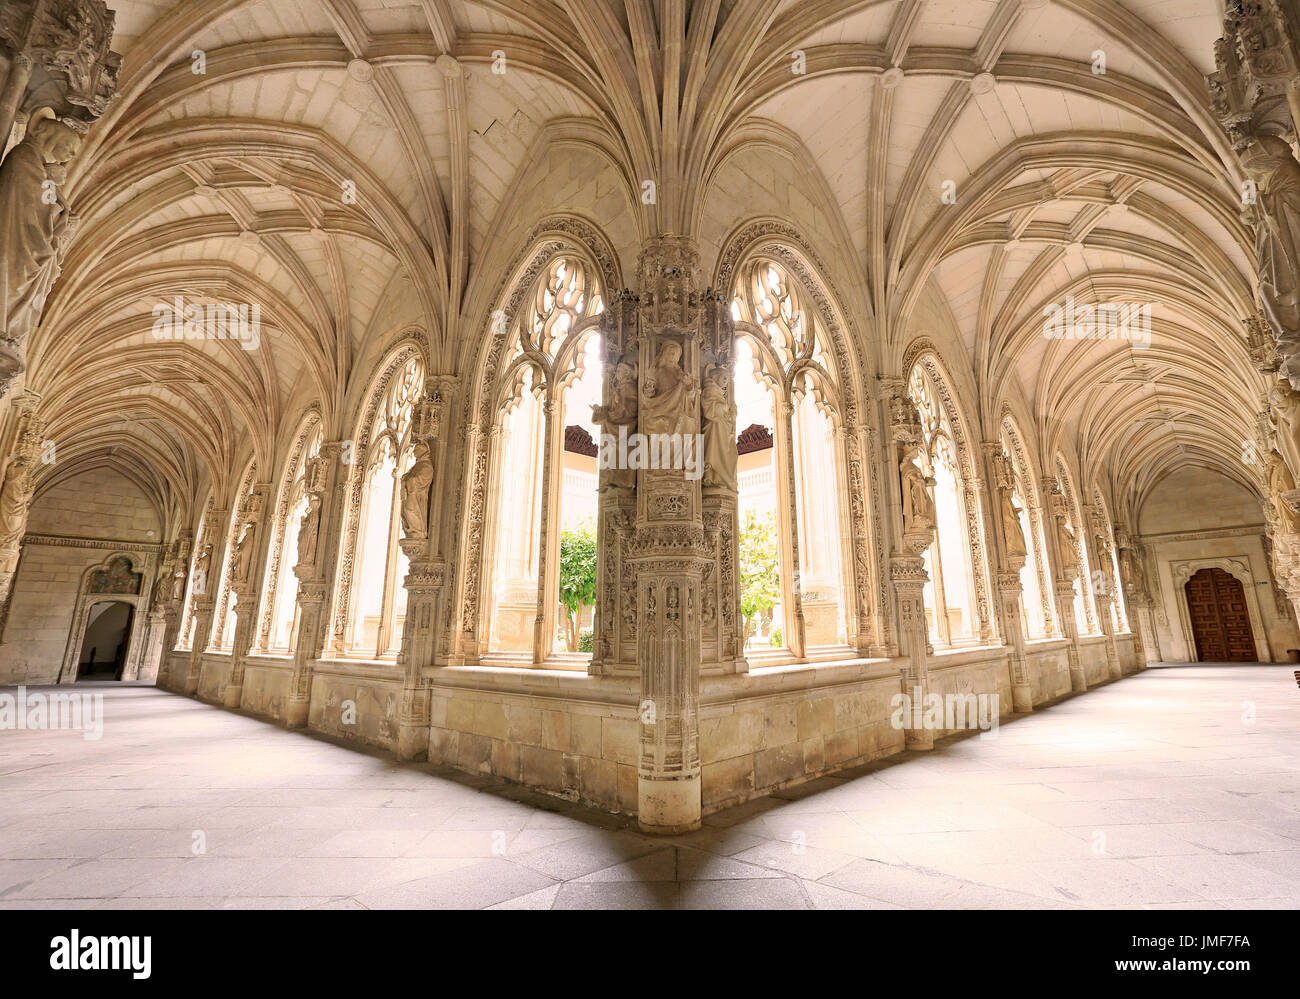 TOLEDO, SPAIN - JUNE 27, 2017: Atrium of Monastery of San Juan de los Reyes. The monastery is an Isabelline style monastery in Toledo. - Stock Image